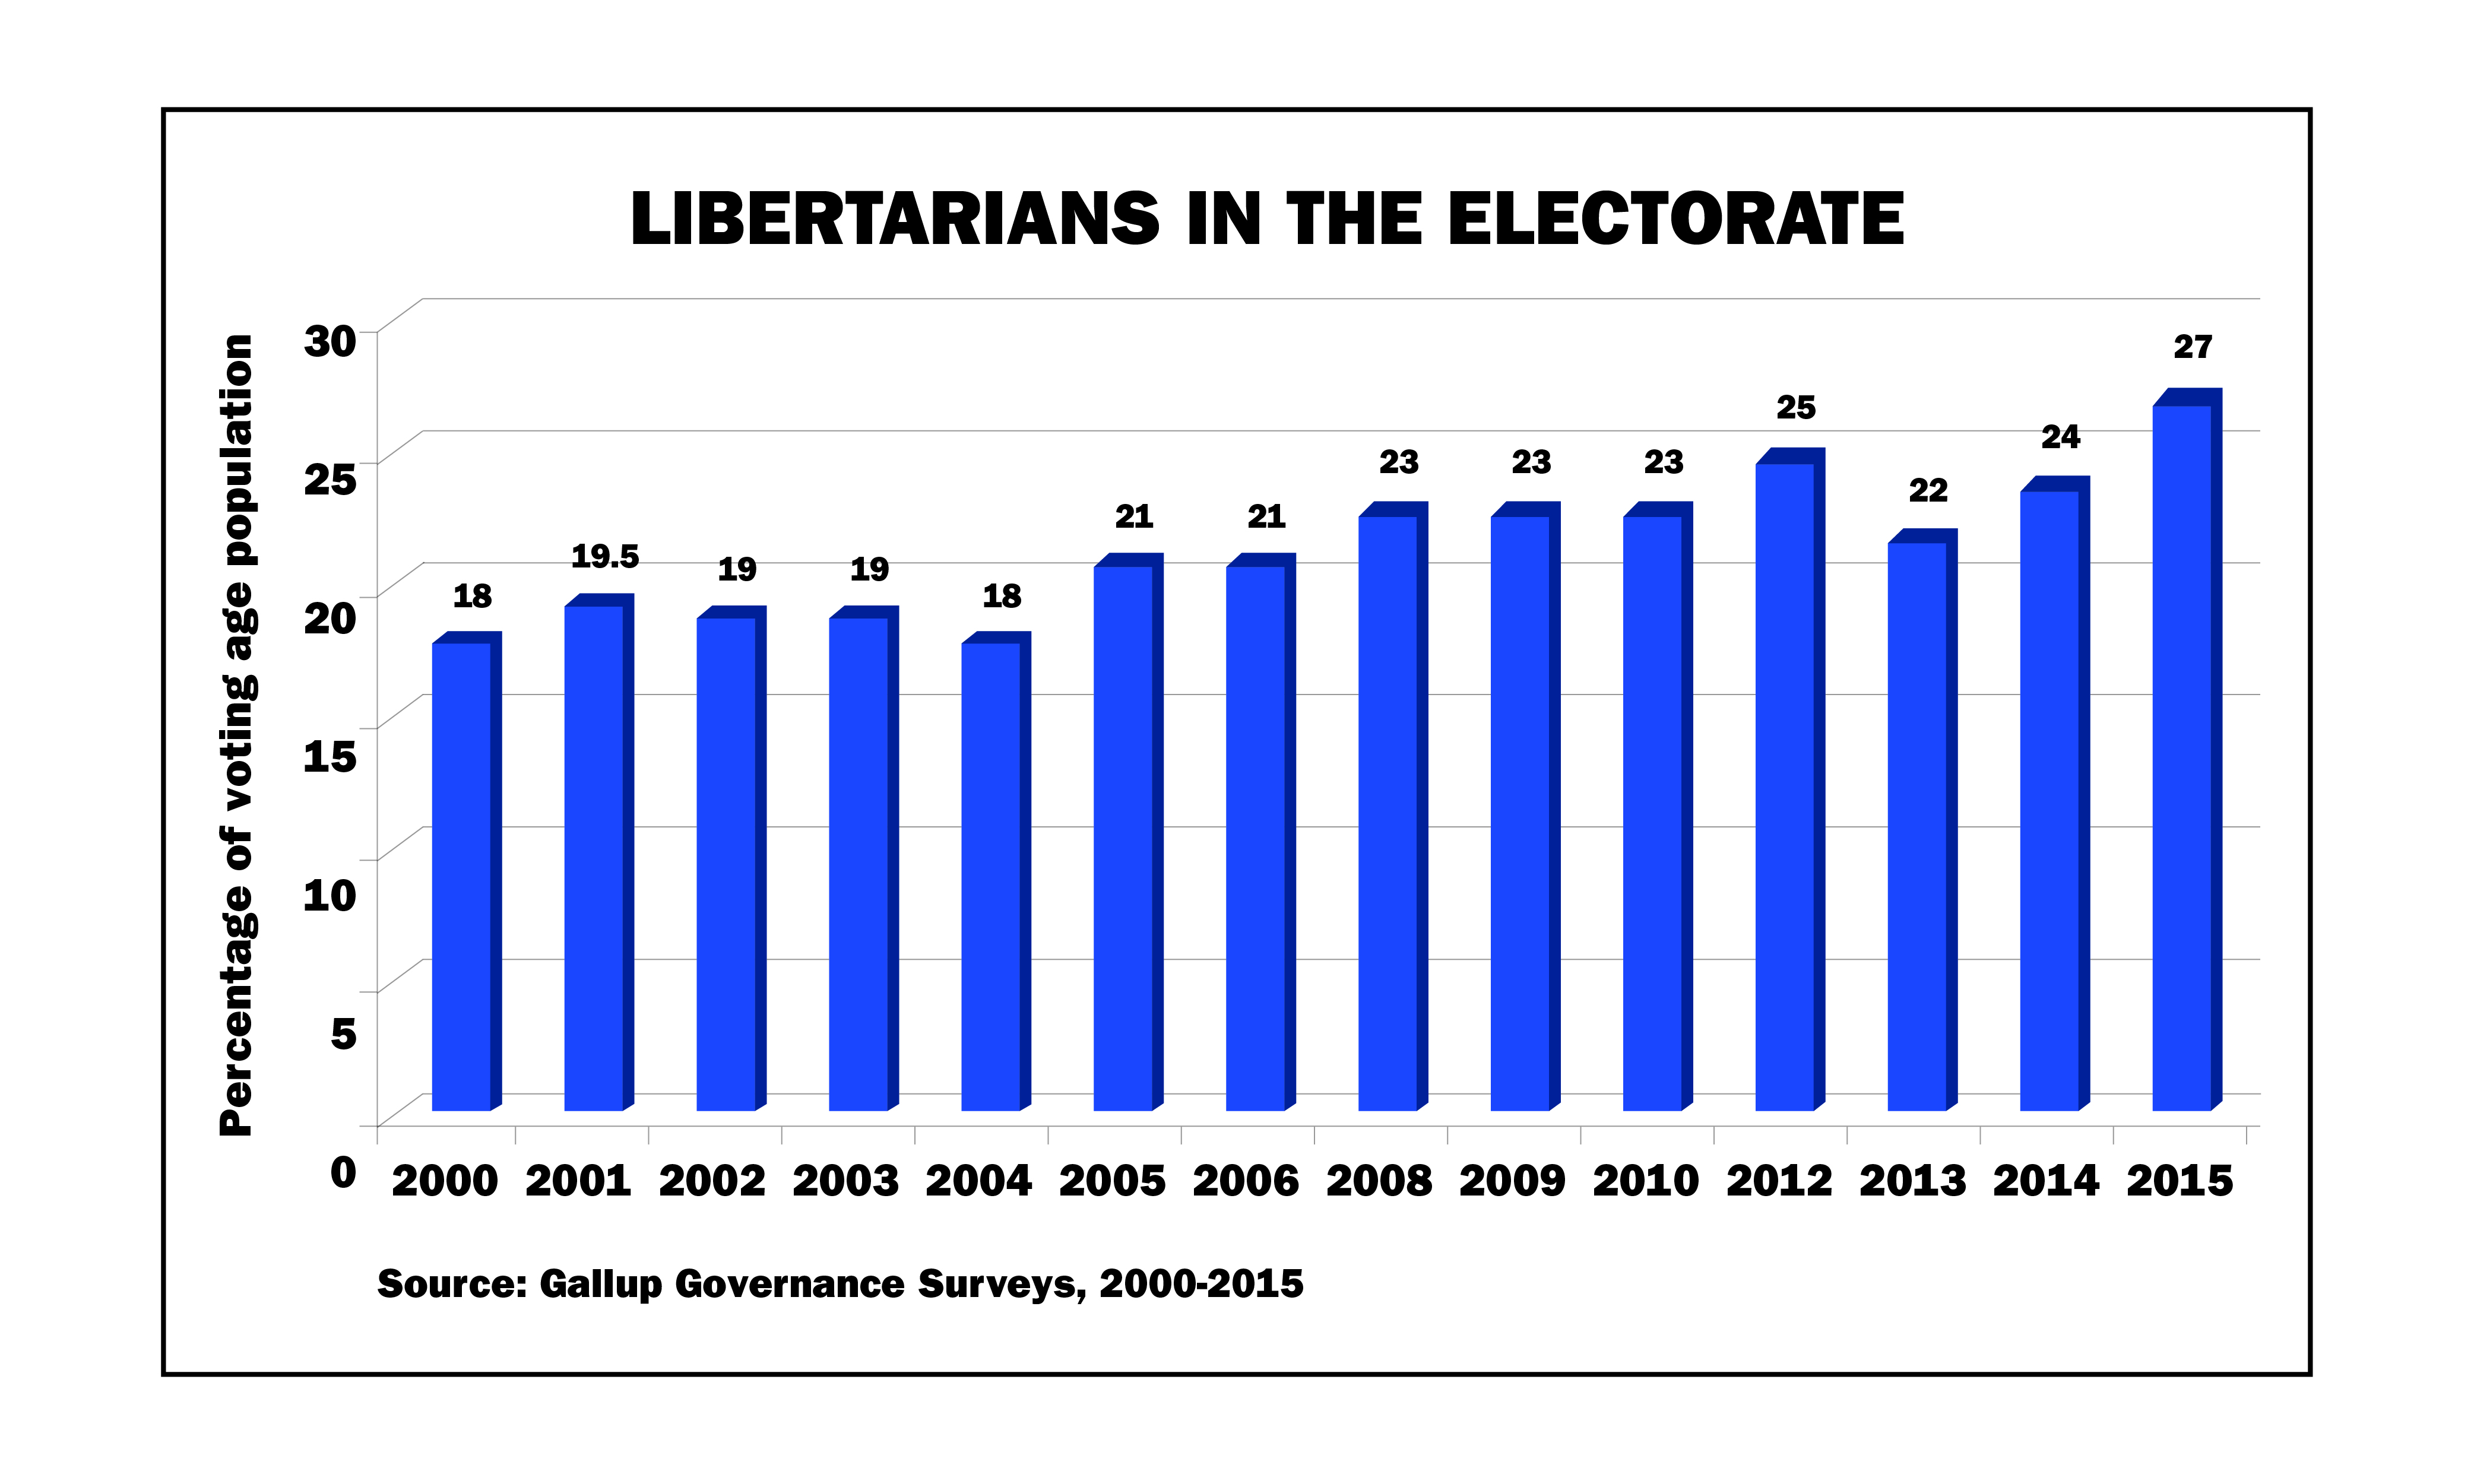 Libertarians in the Electorate, 2000-2015